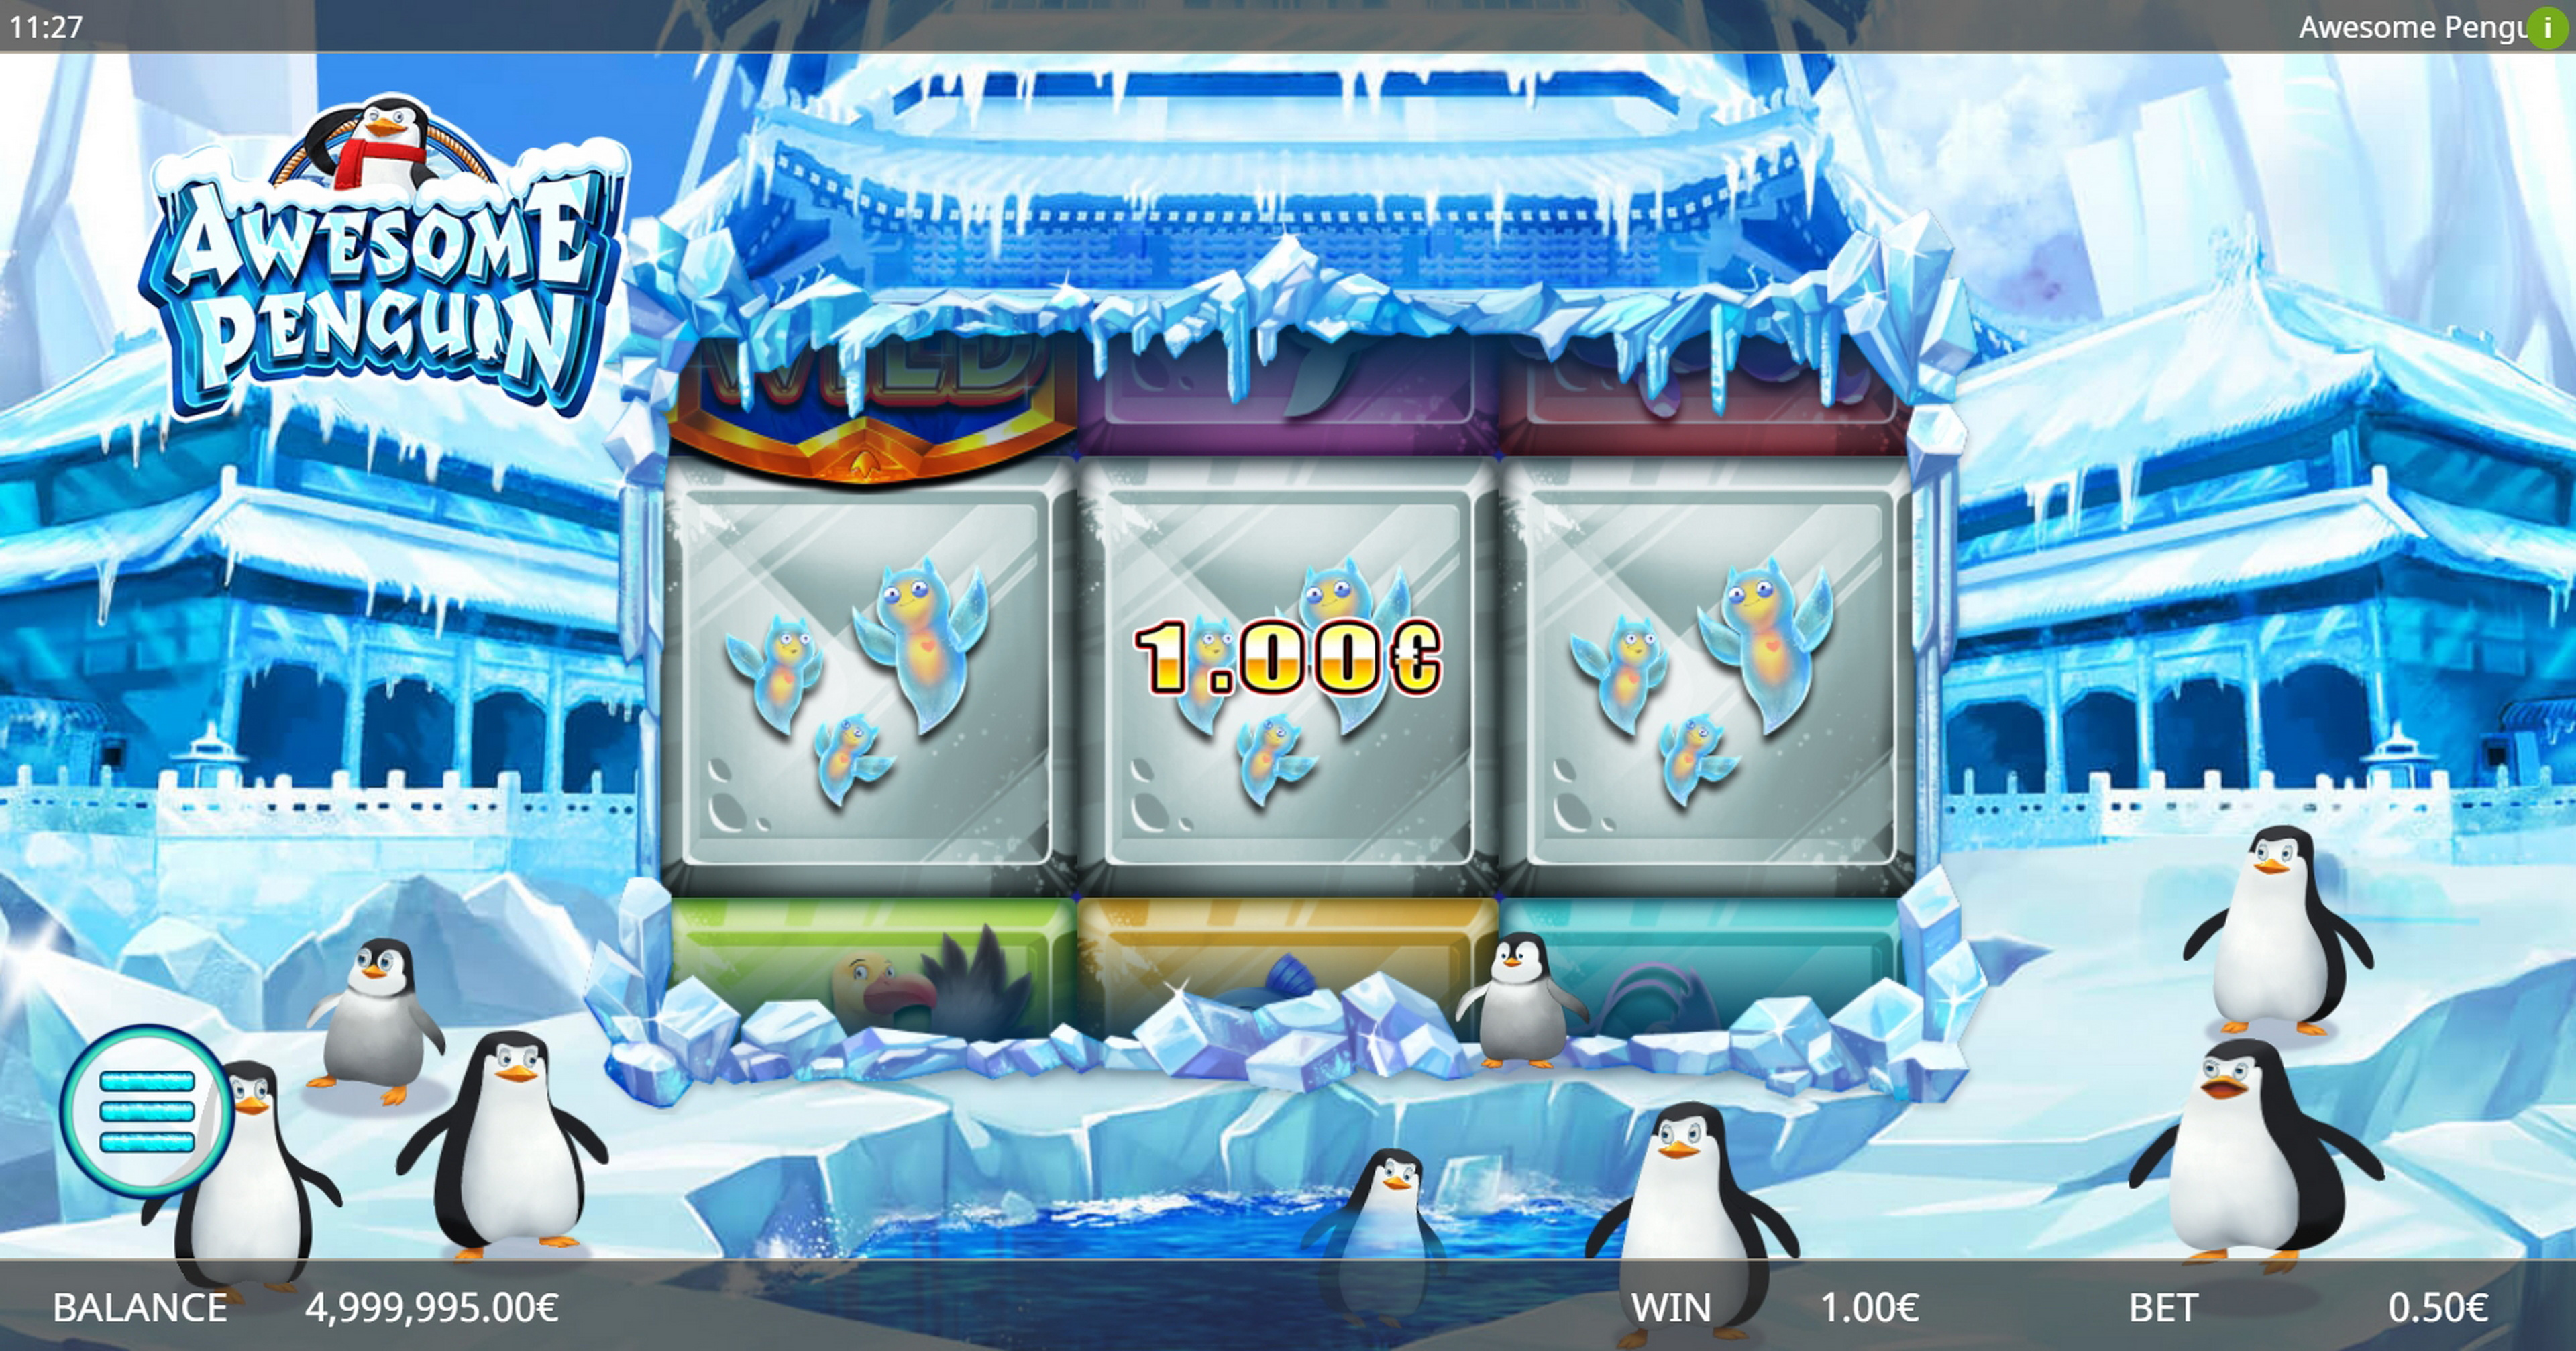 Win Money in Awesome Penguin Free Slot Game by Ganapati